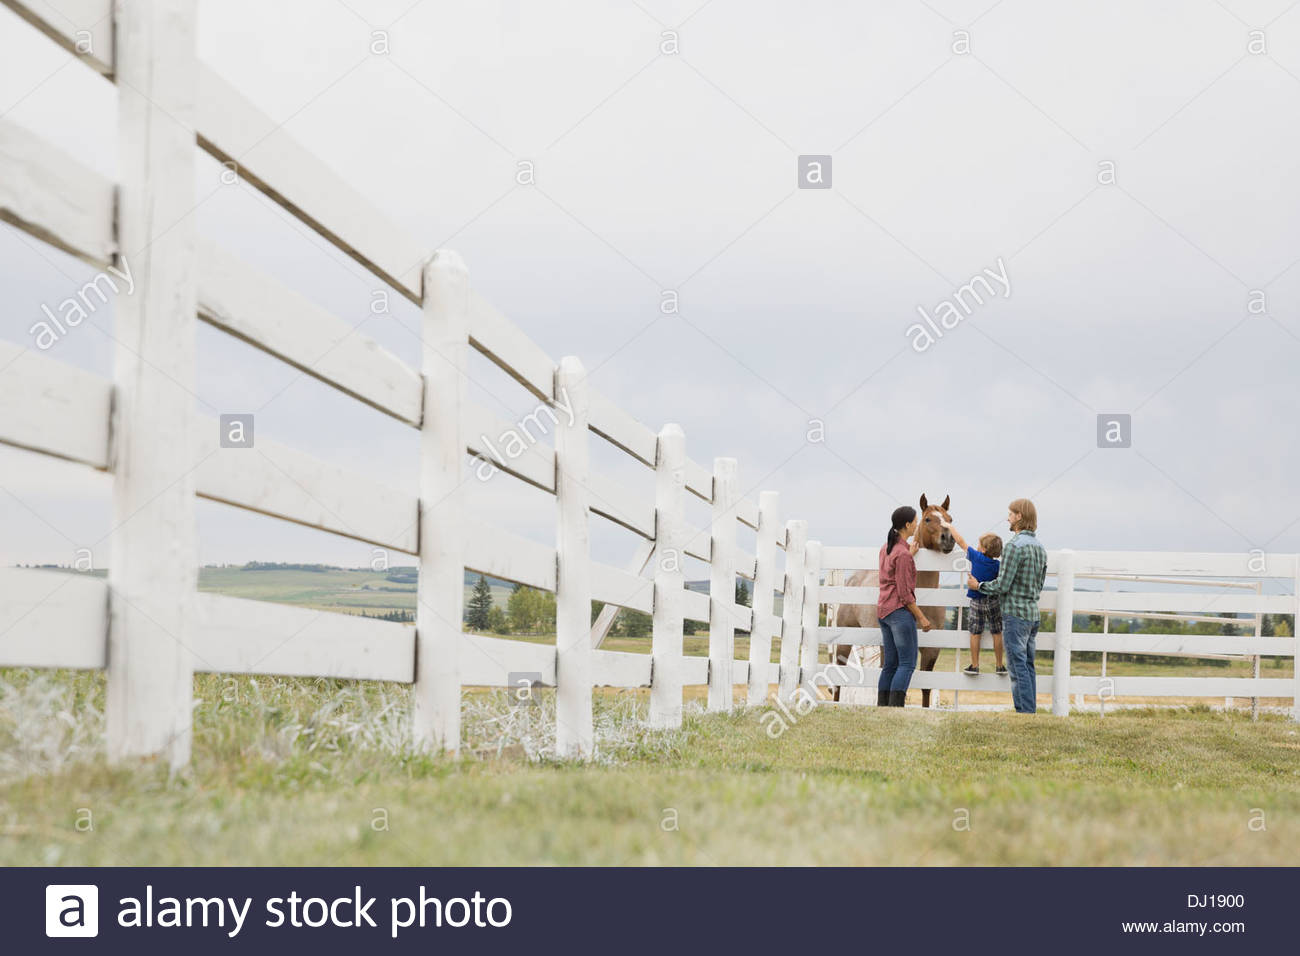 Family of three feeding horse on ranch - Stock Image